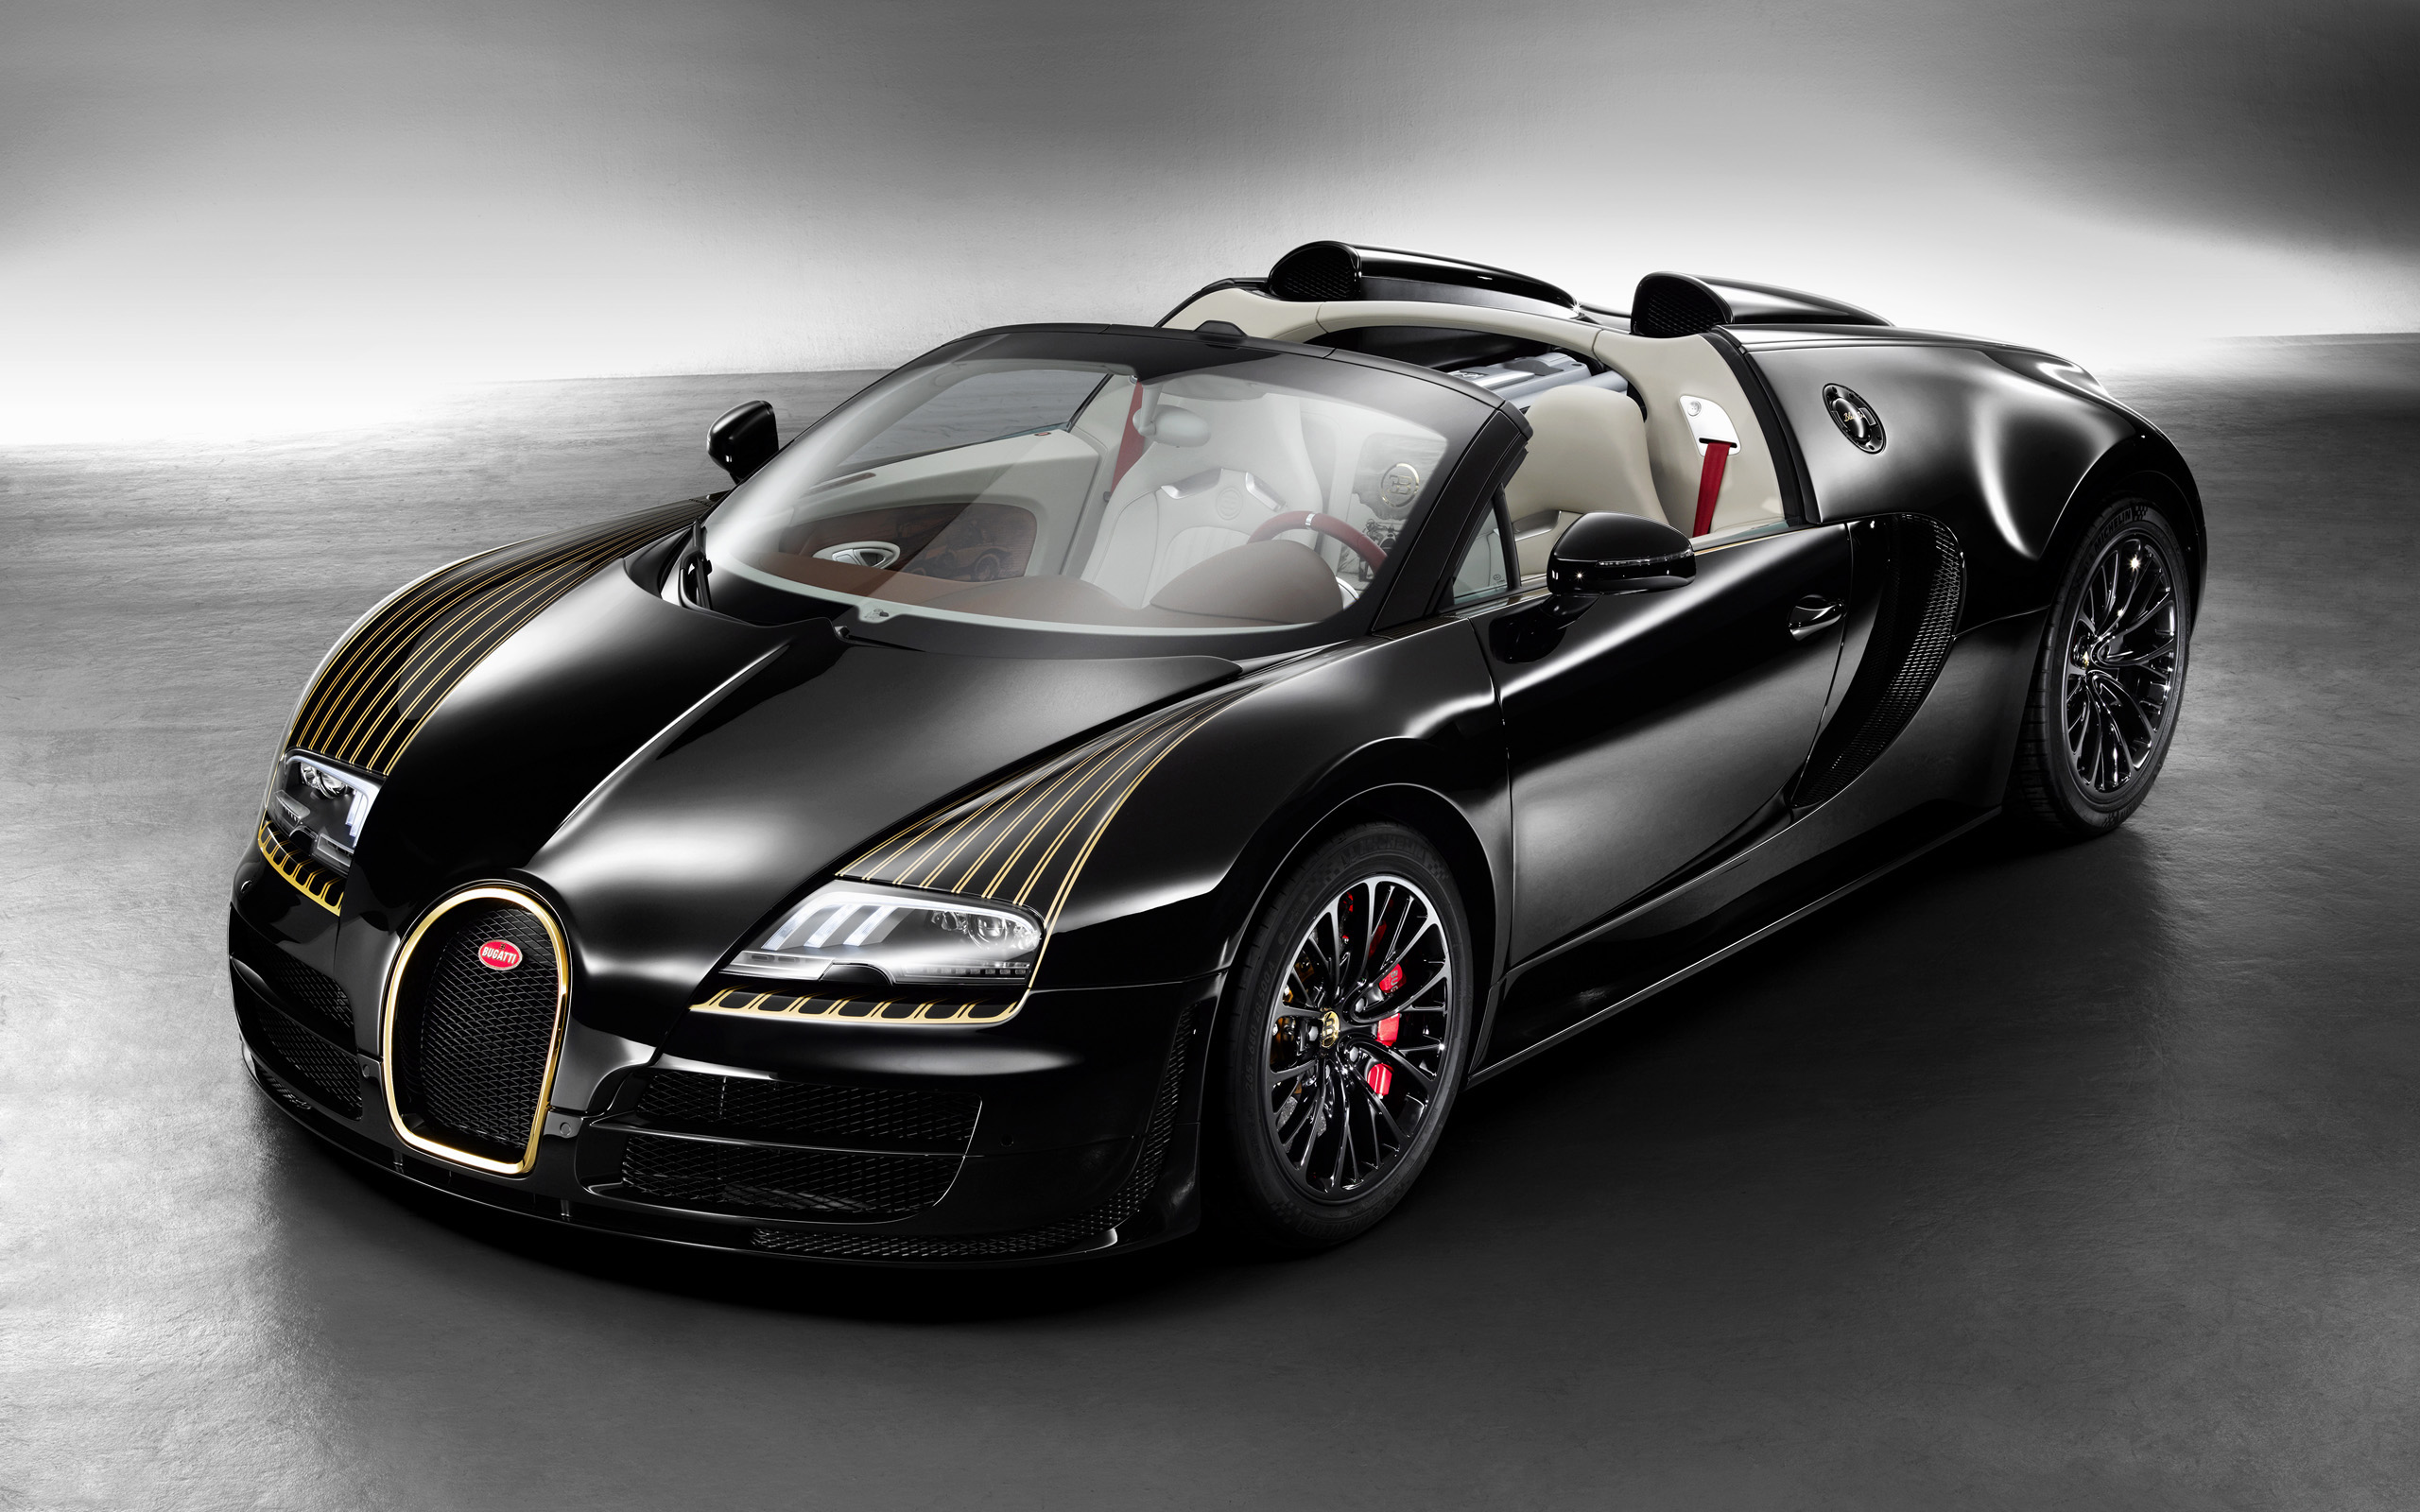 Bugatti Veyron Black Bess photo #1